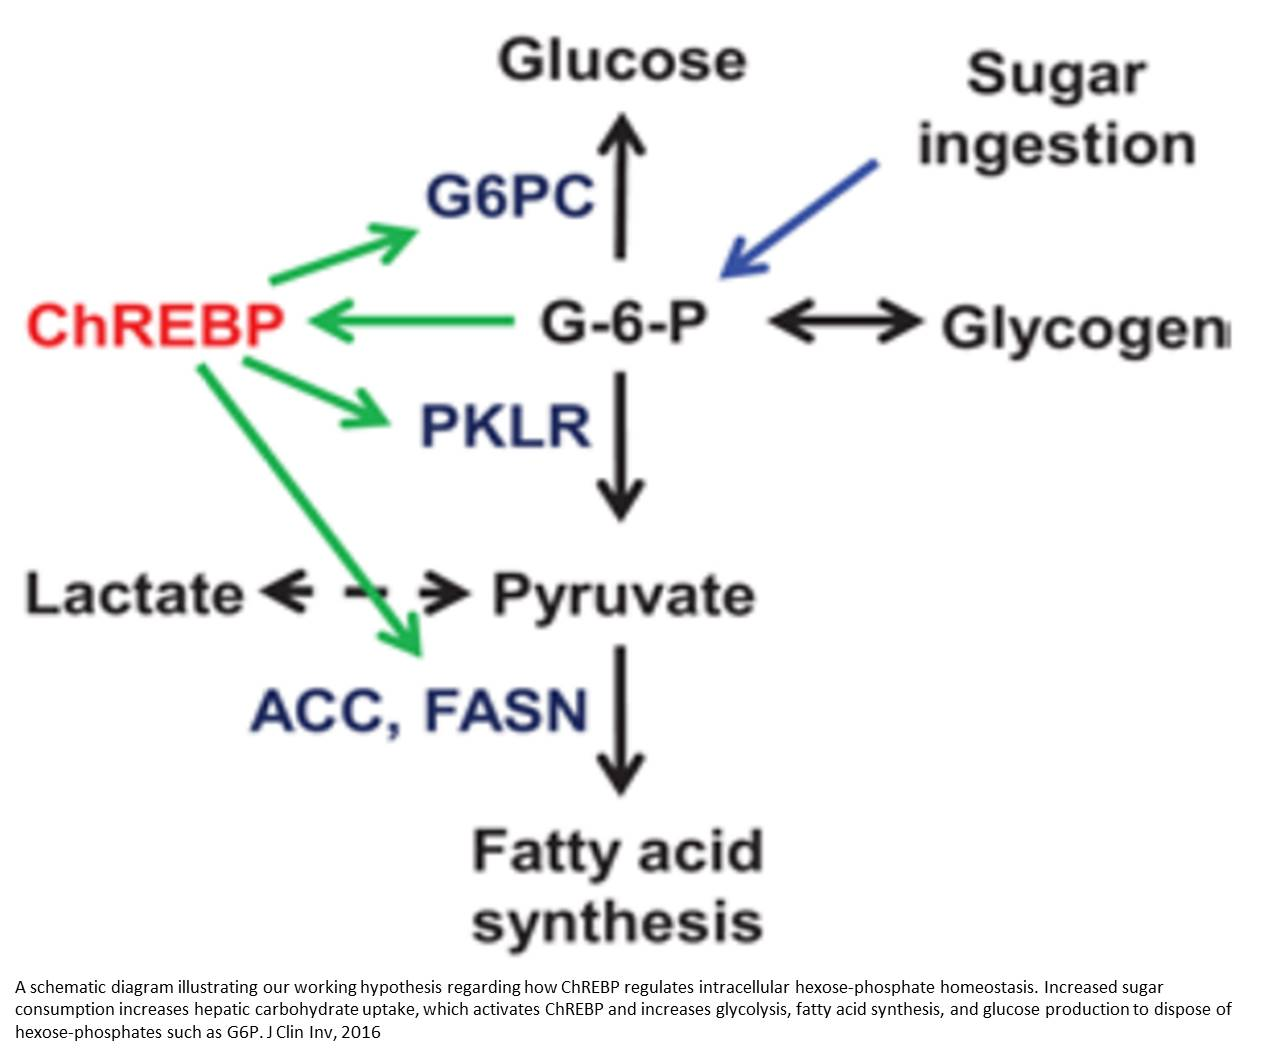 New theory on how insulin resistance, metabolic disease begin